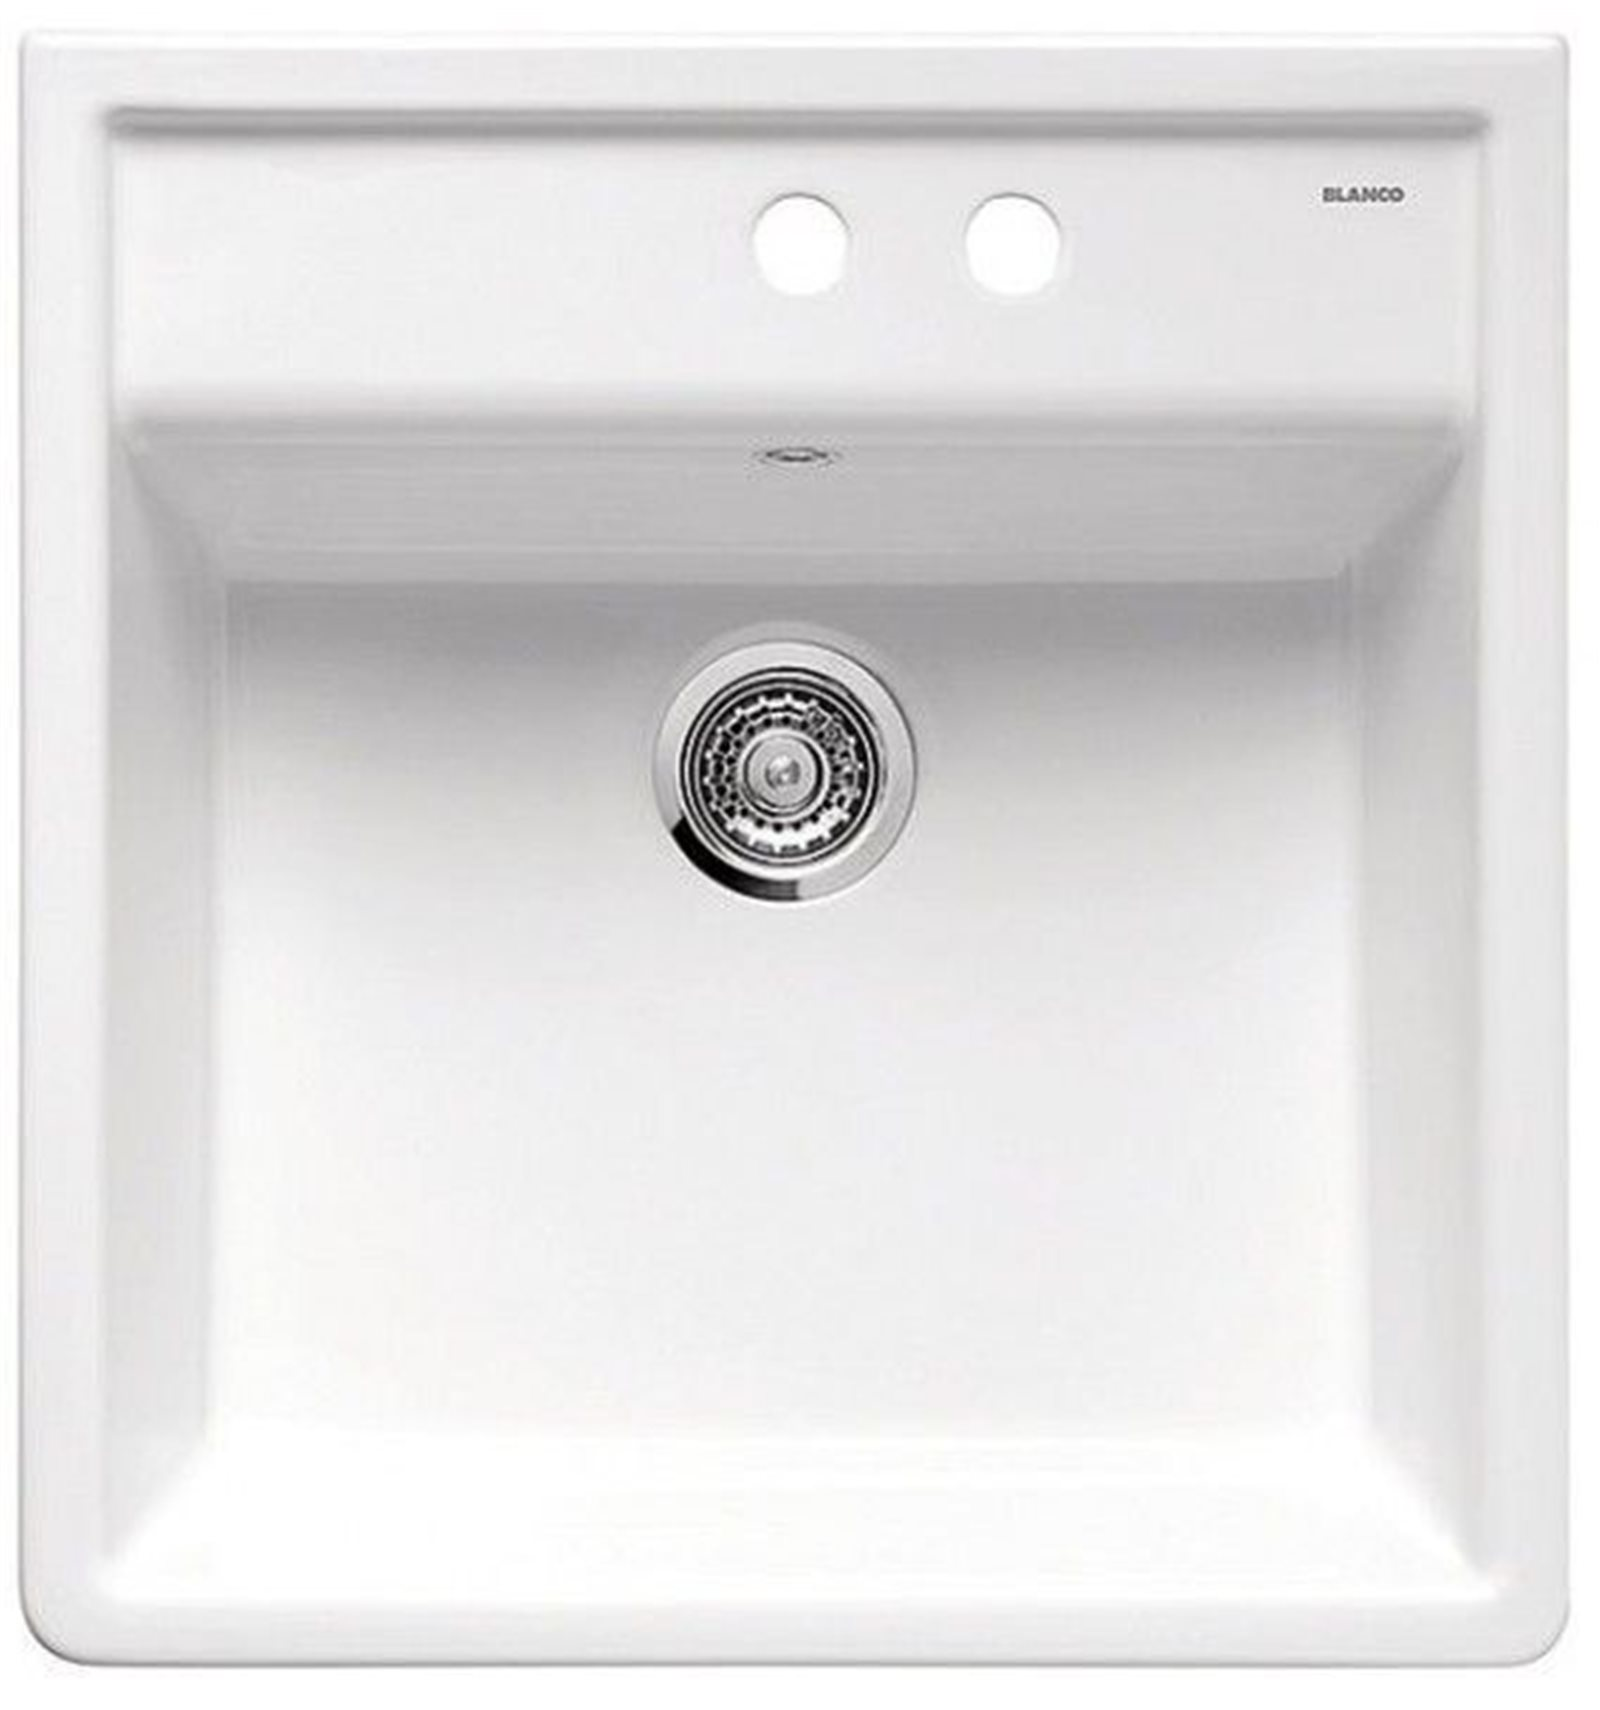 kitchen sink blanco ceramic butler classic kitchen sink blanco panor 514486 514501 2584